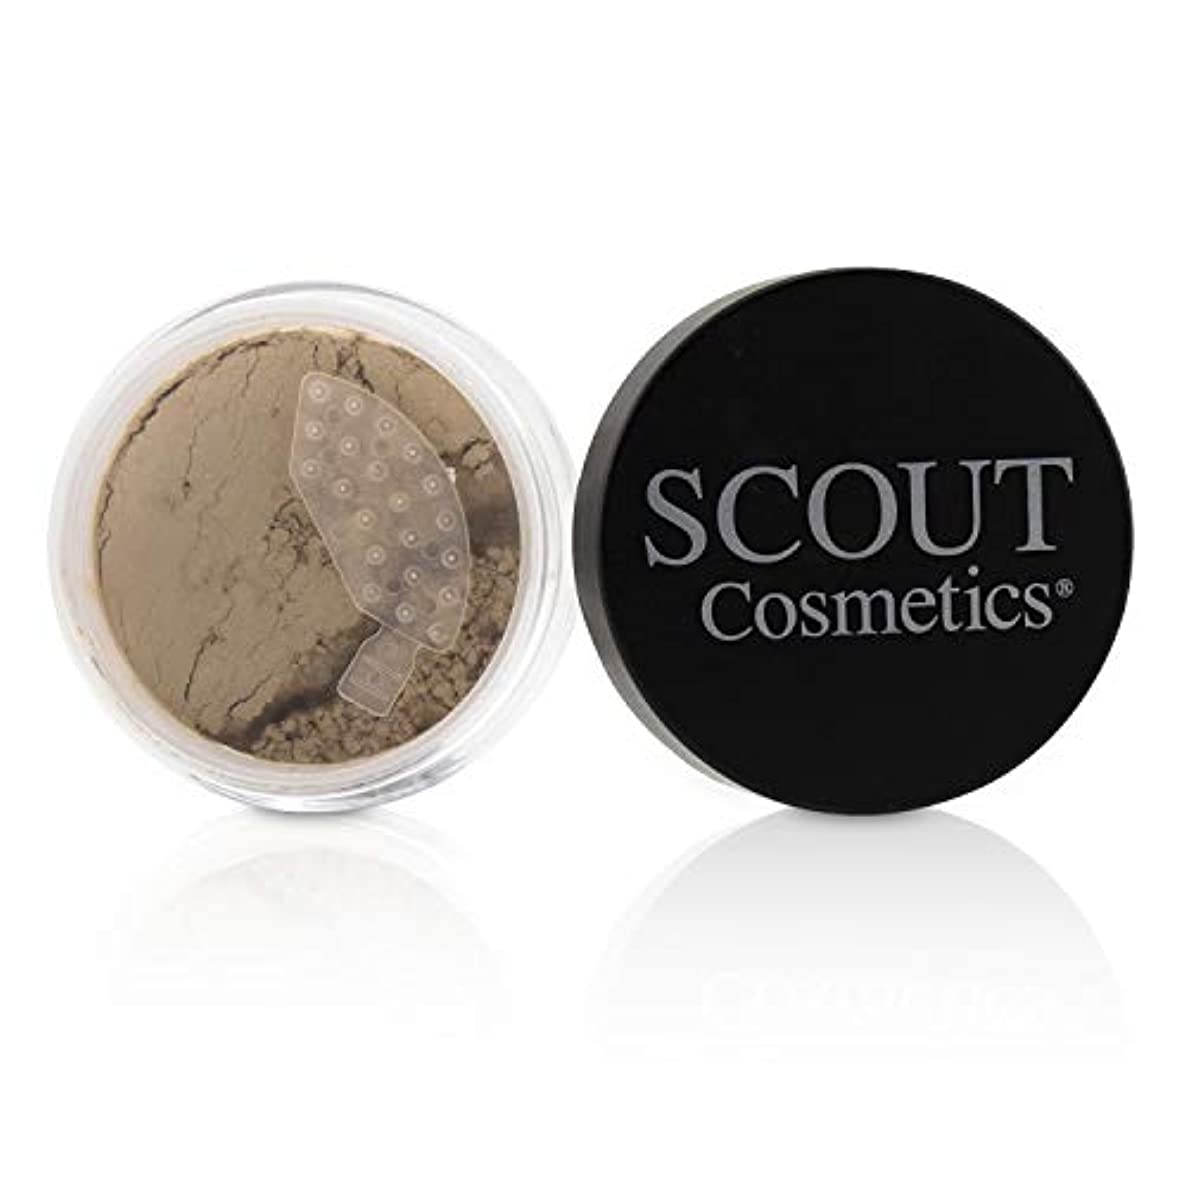 センチメンタル学校ファントムSCOUT Cosmetics Mineral Powder Foundation SPF 20 - # Porcelain 8g/0.28oz並行輸入品